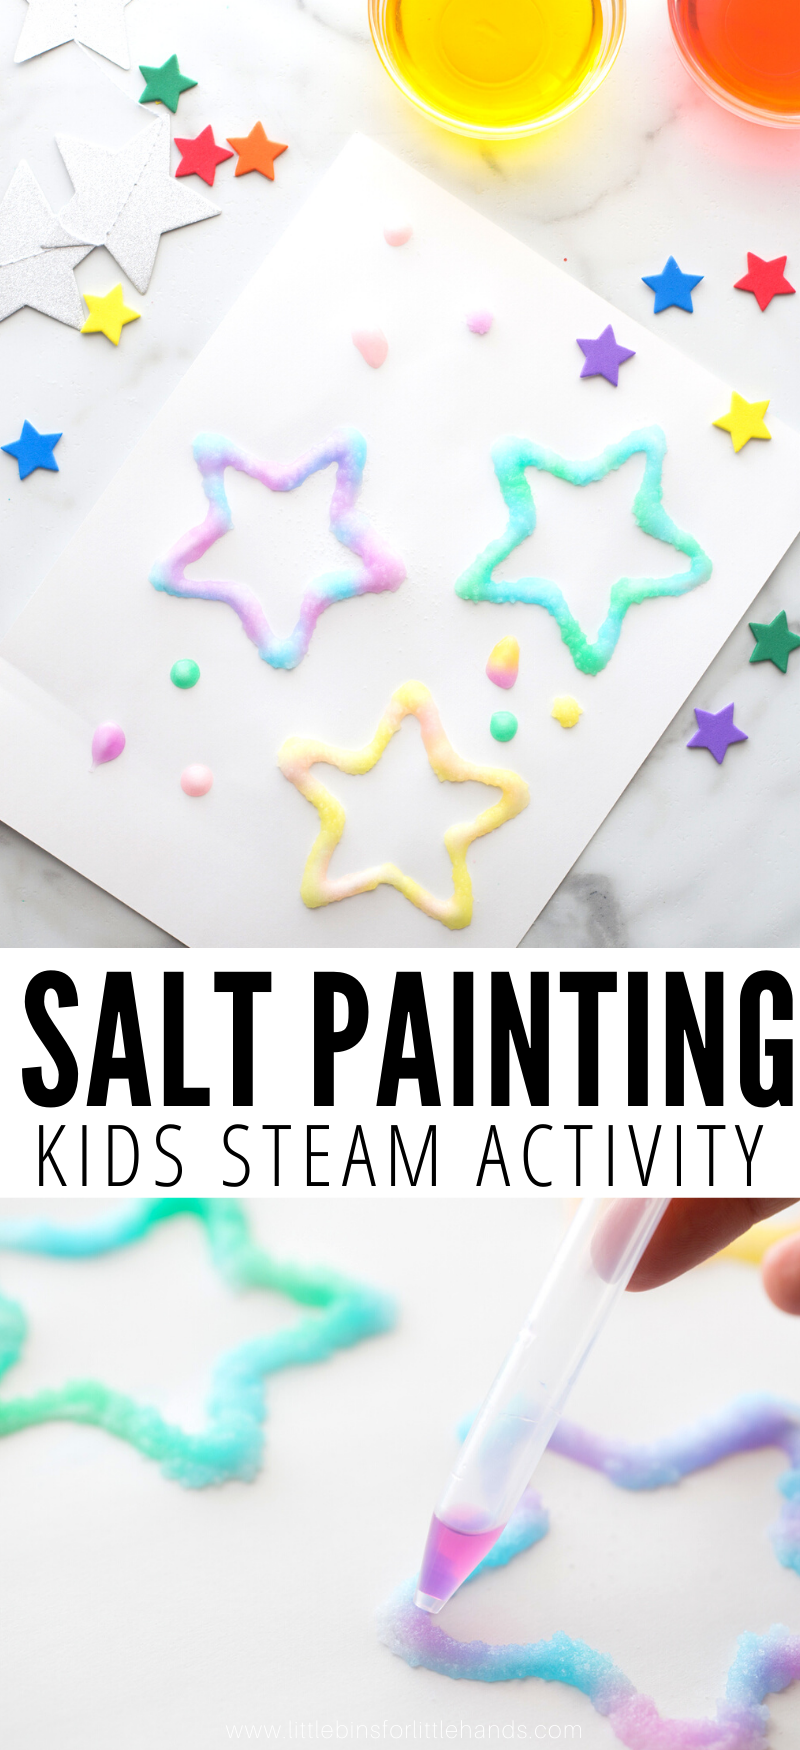 Salt Painting For Kids In 2020 Salt Painting Painting For Kids Kids Art Projects